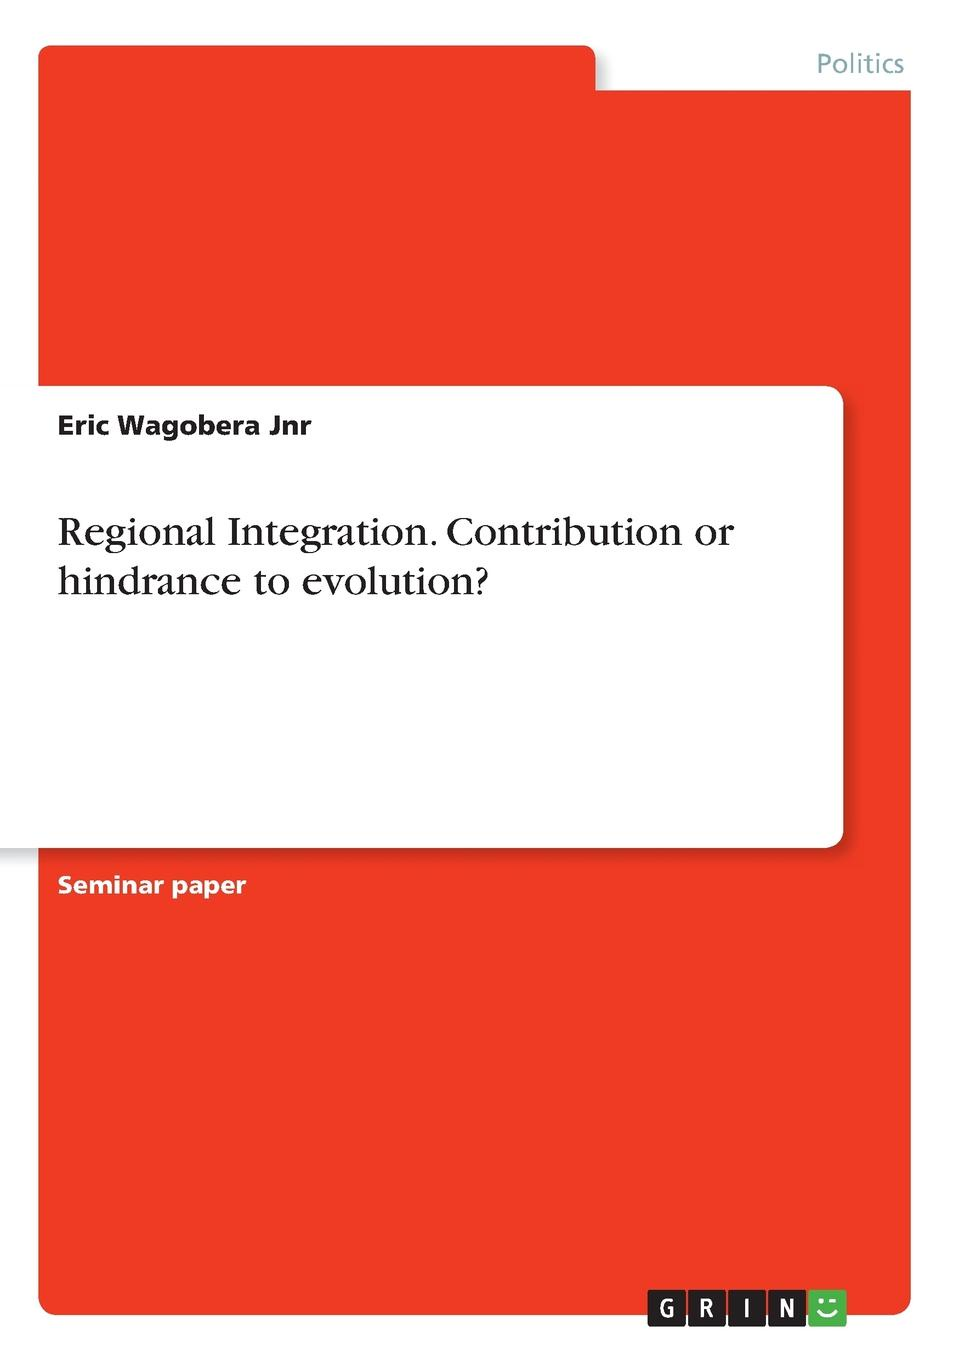 Eric Wagobera Jnr Regional Integration. Contribution or hindrance to evolution. introduction to international relations